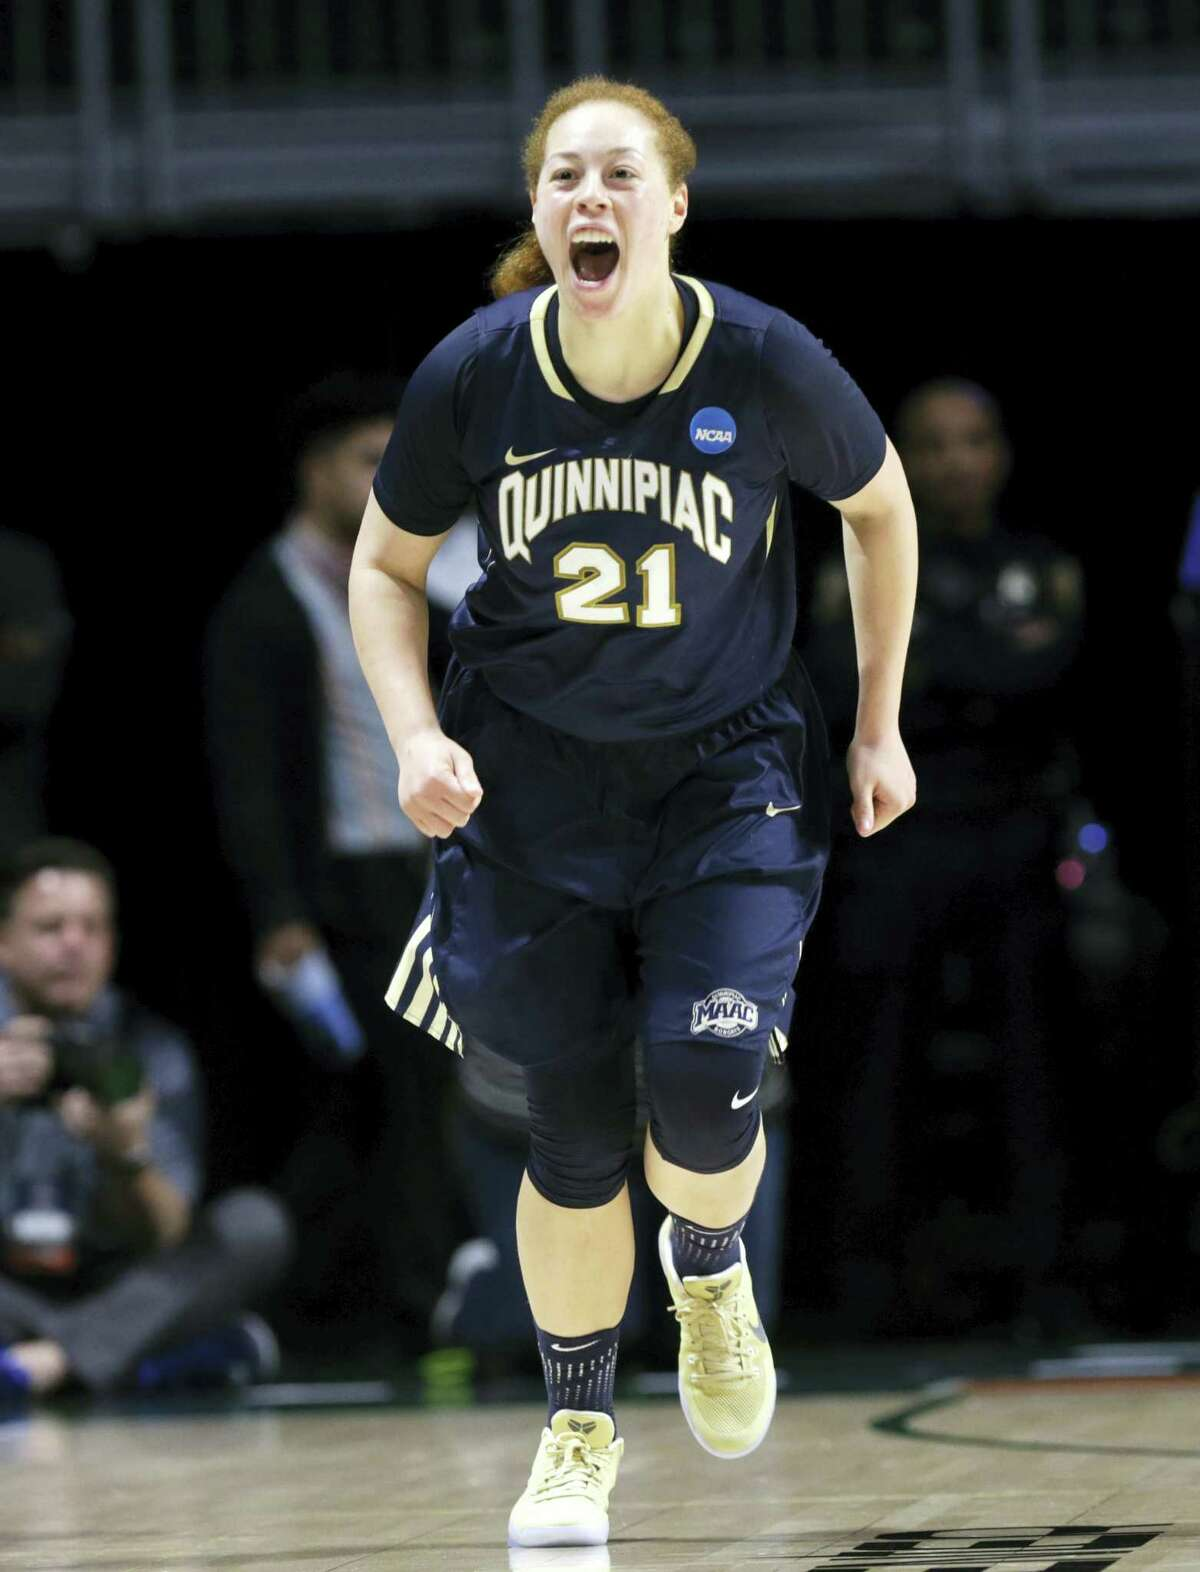 Quinnipiac's Jen Fay reacts after shooting a 3-pointer against Marquette in an NCAA tournament first-round game on Saturday.